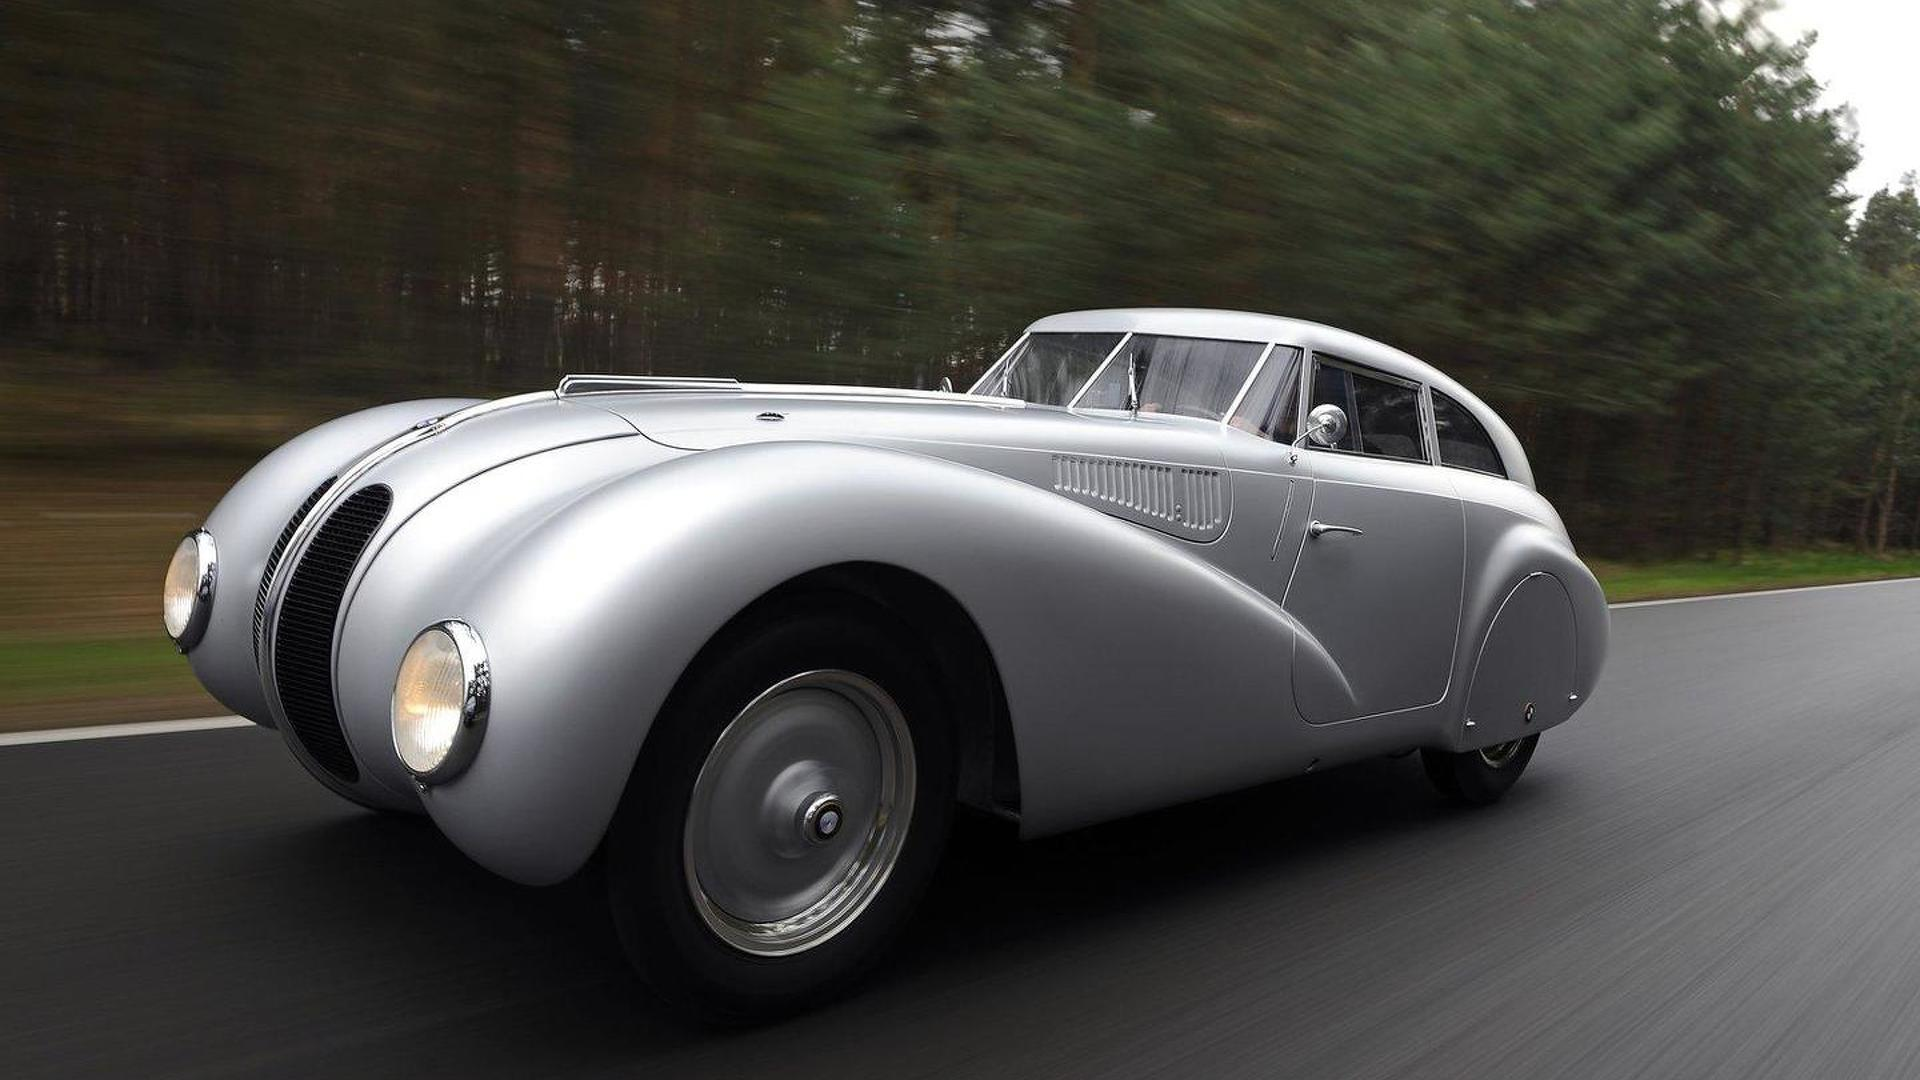 BMW Classic reveals fully recreated 1940 BMW 328 Kamm Coupe